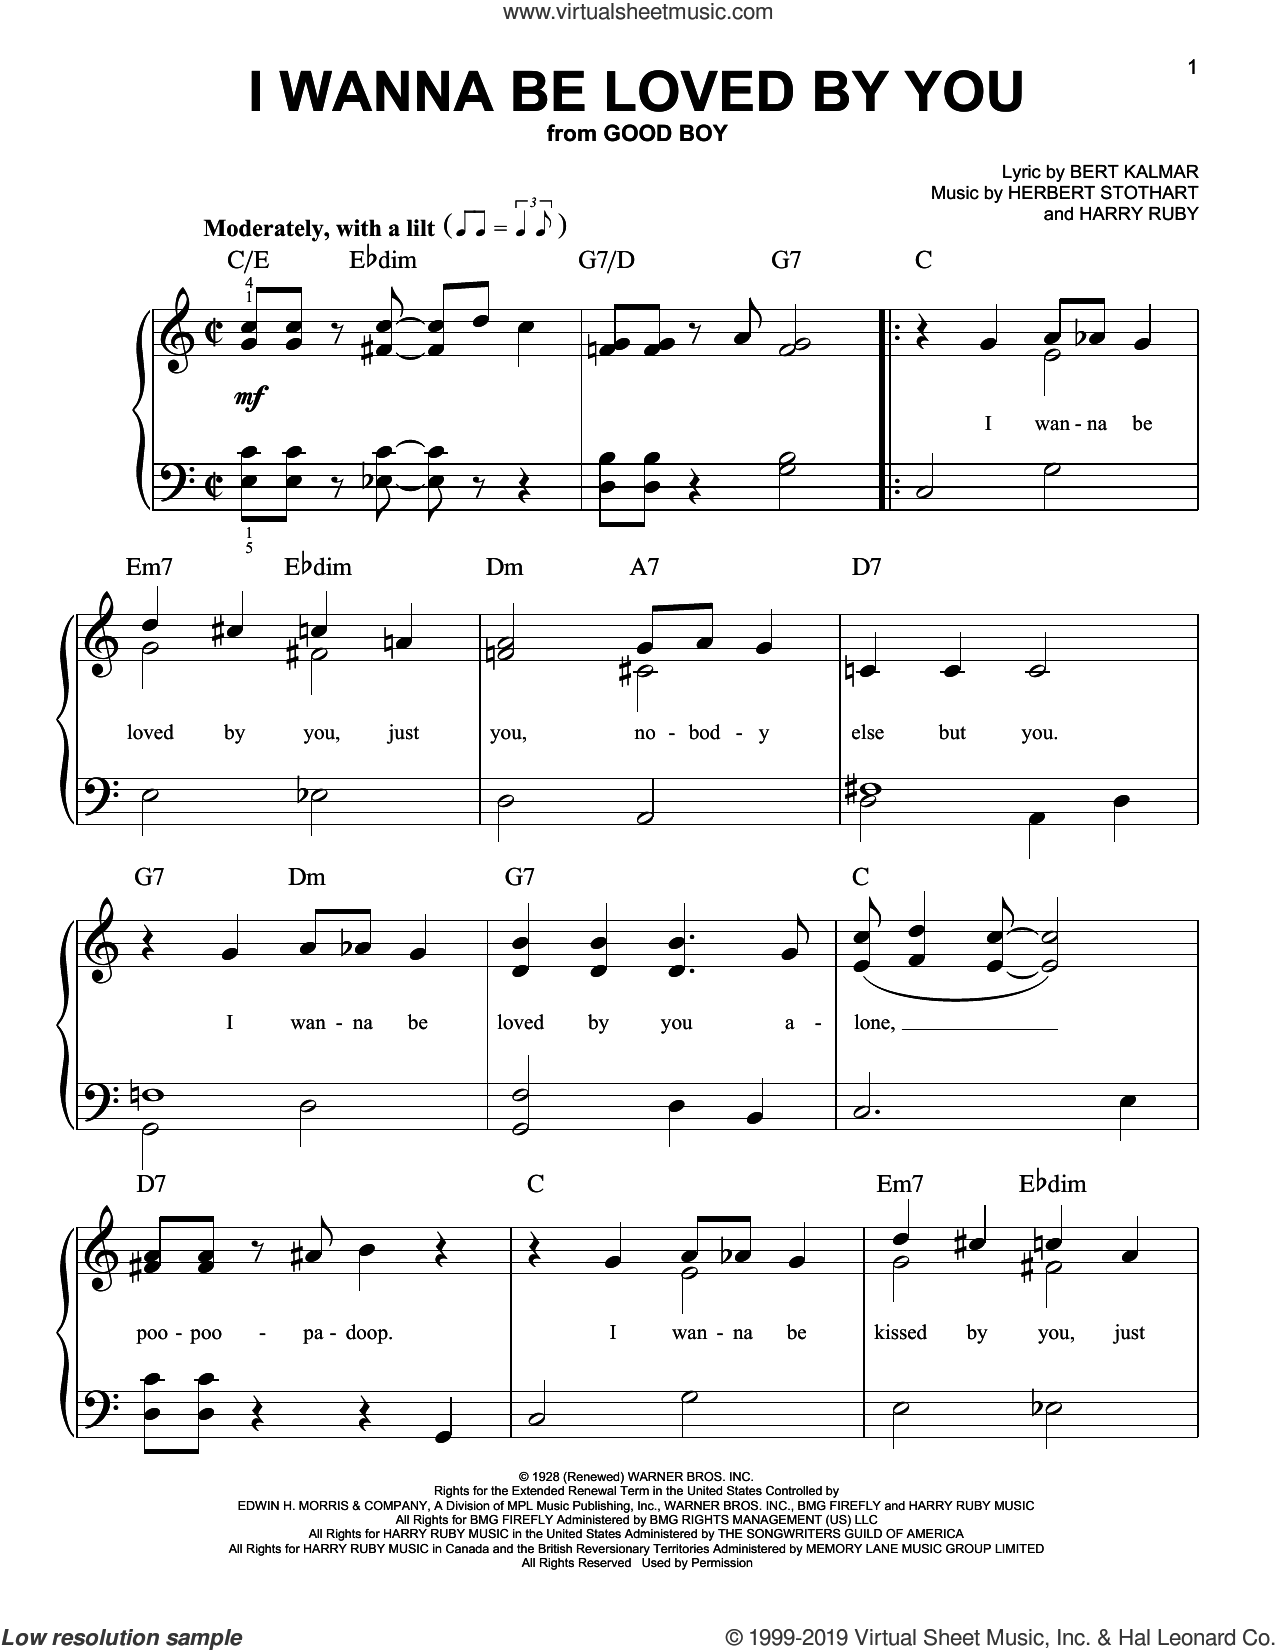 I Wanna Be Loved By You sheet music for piano solo by Herbert Stothart, Bert Kalmar and Harry Ruby, easy skill level